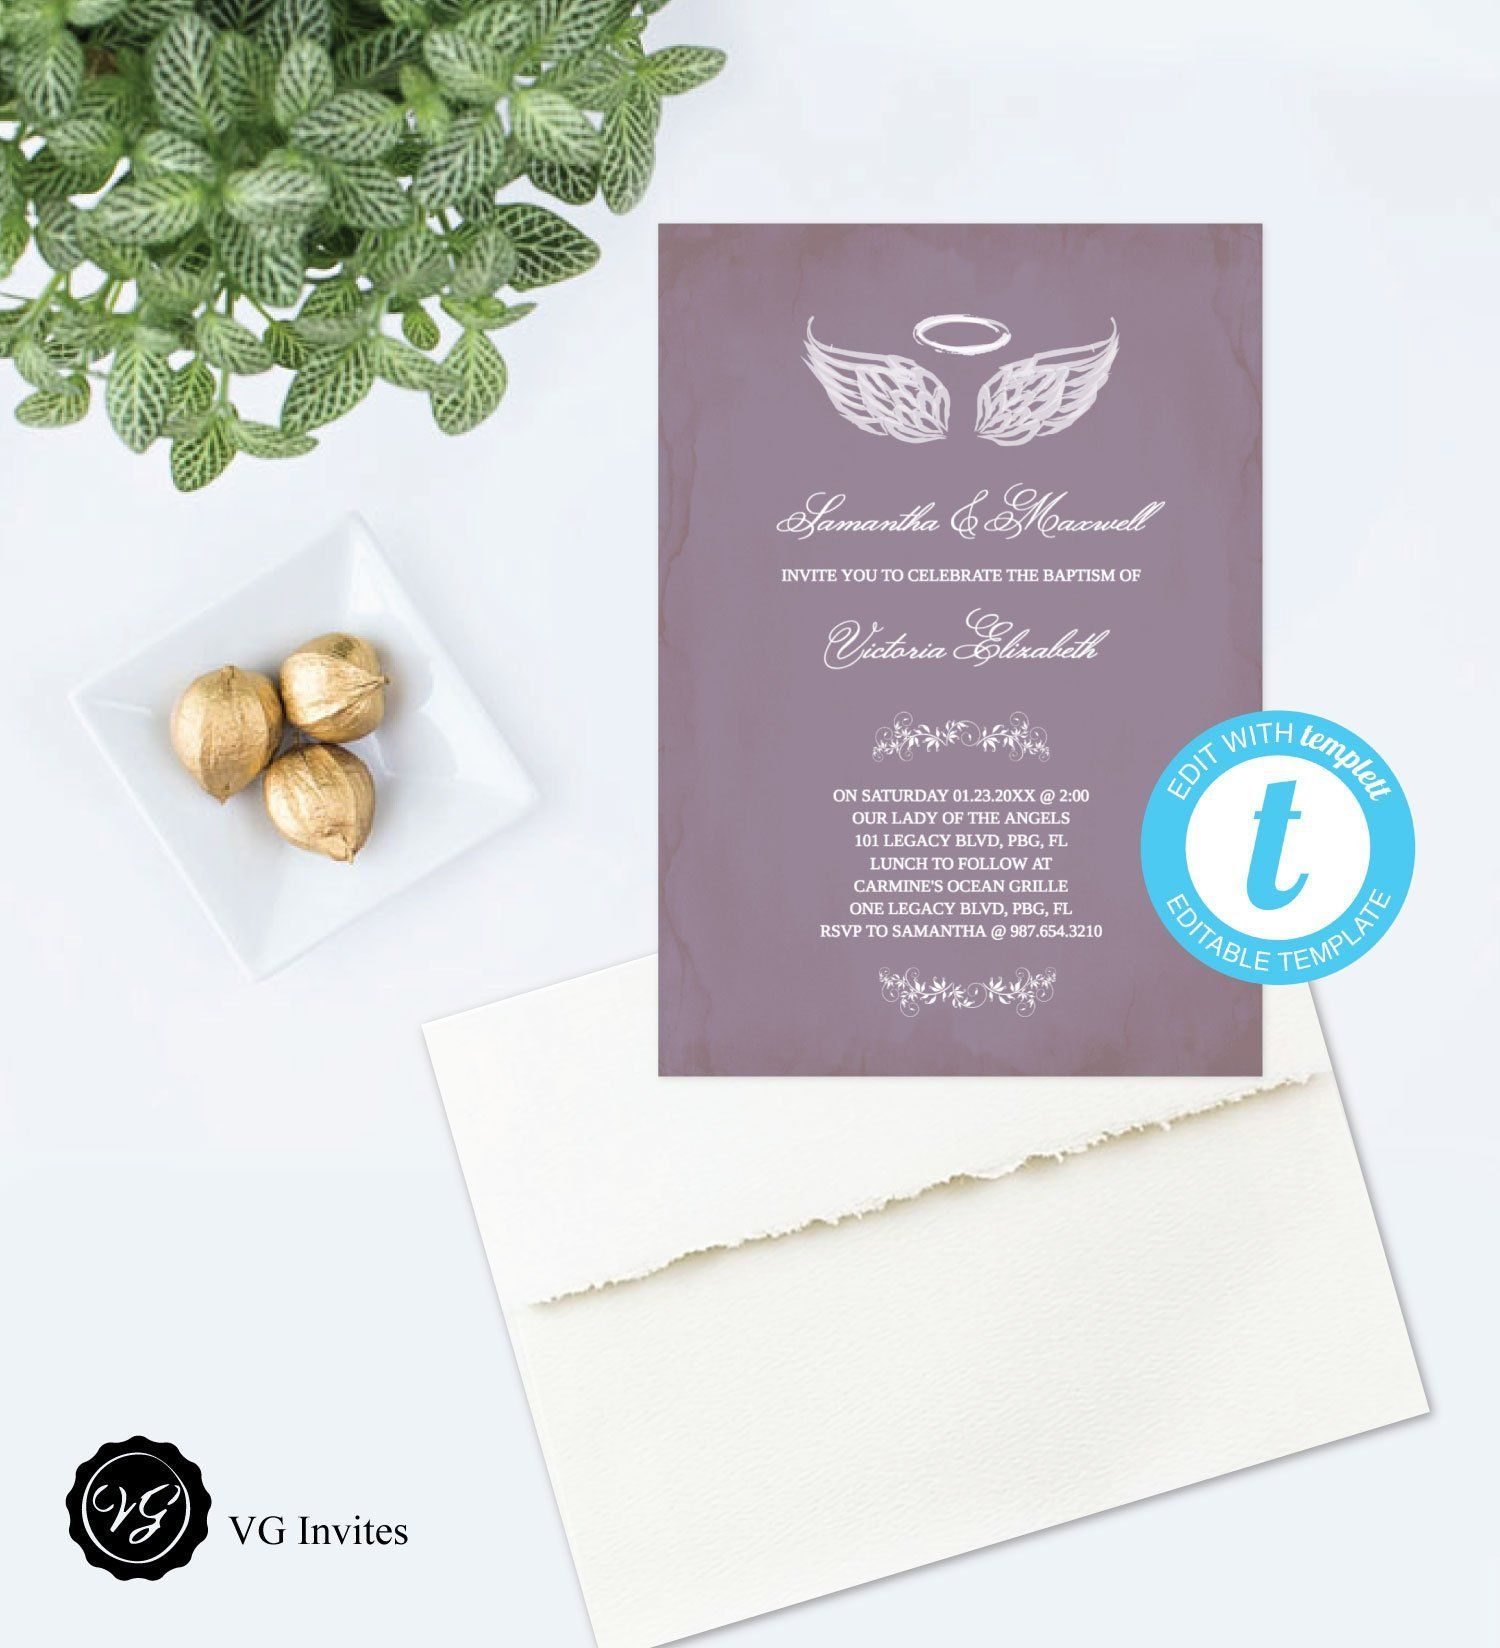 Christening invitation template picture of baby girl with angel.